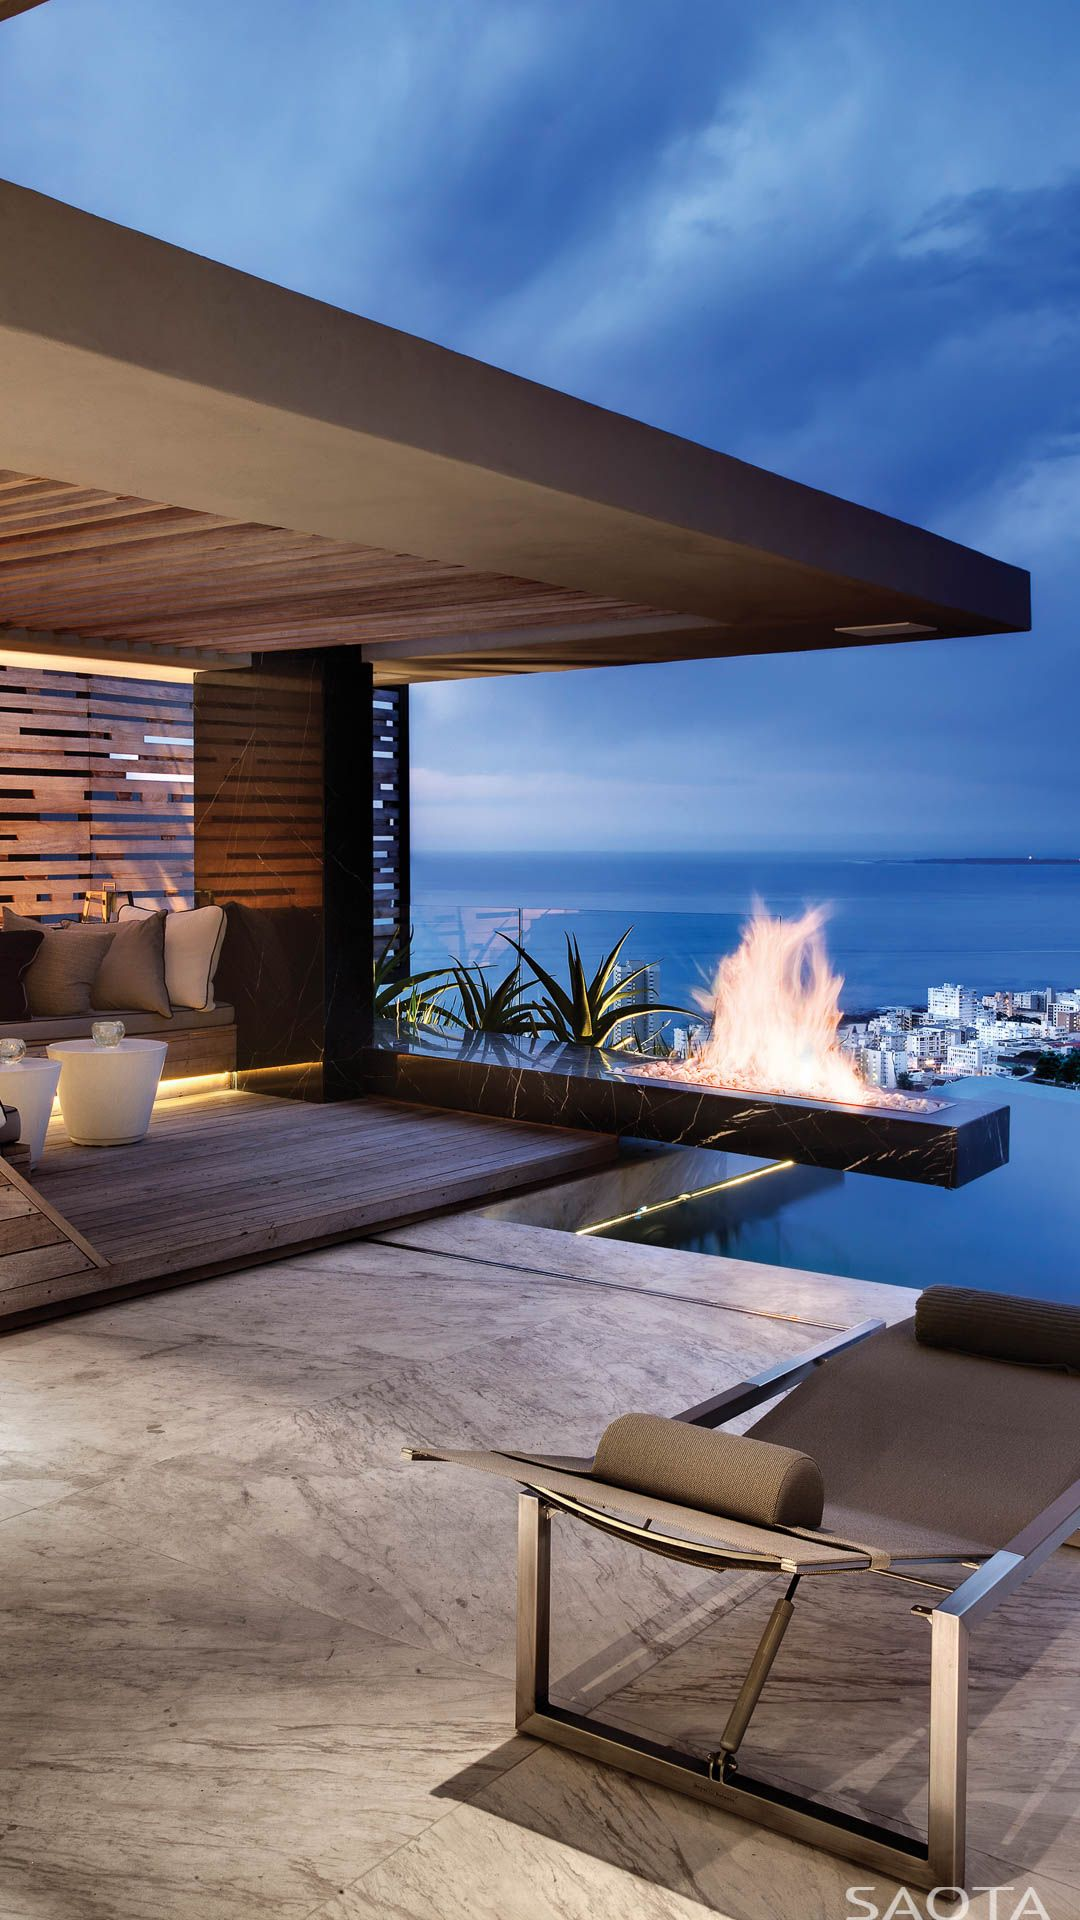 saota za head 1843 saota pools pinterest house dream